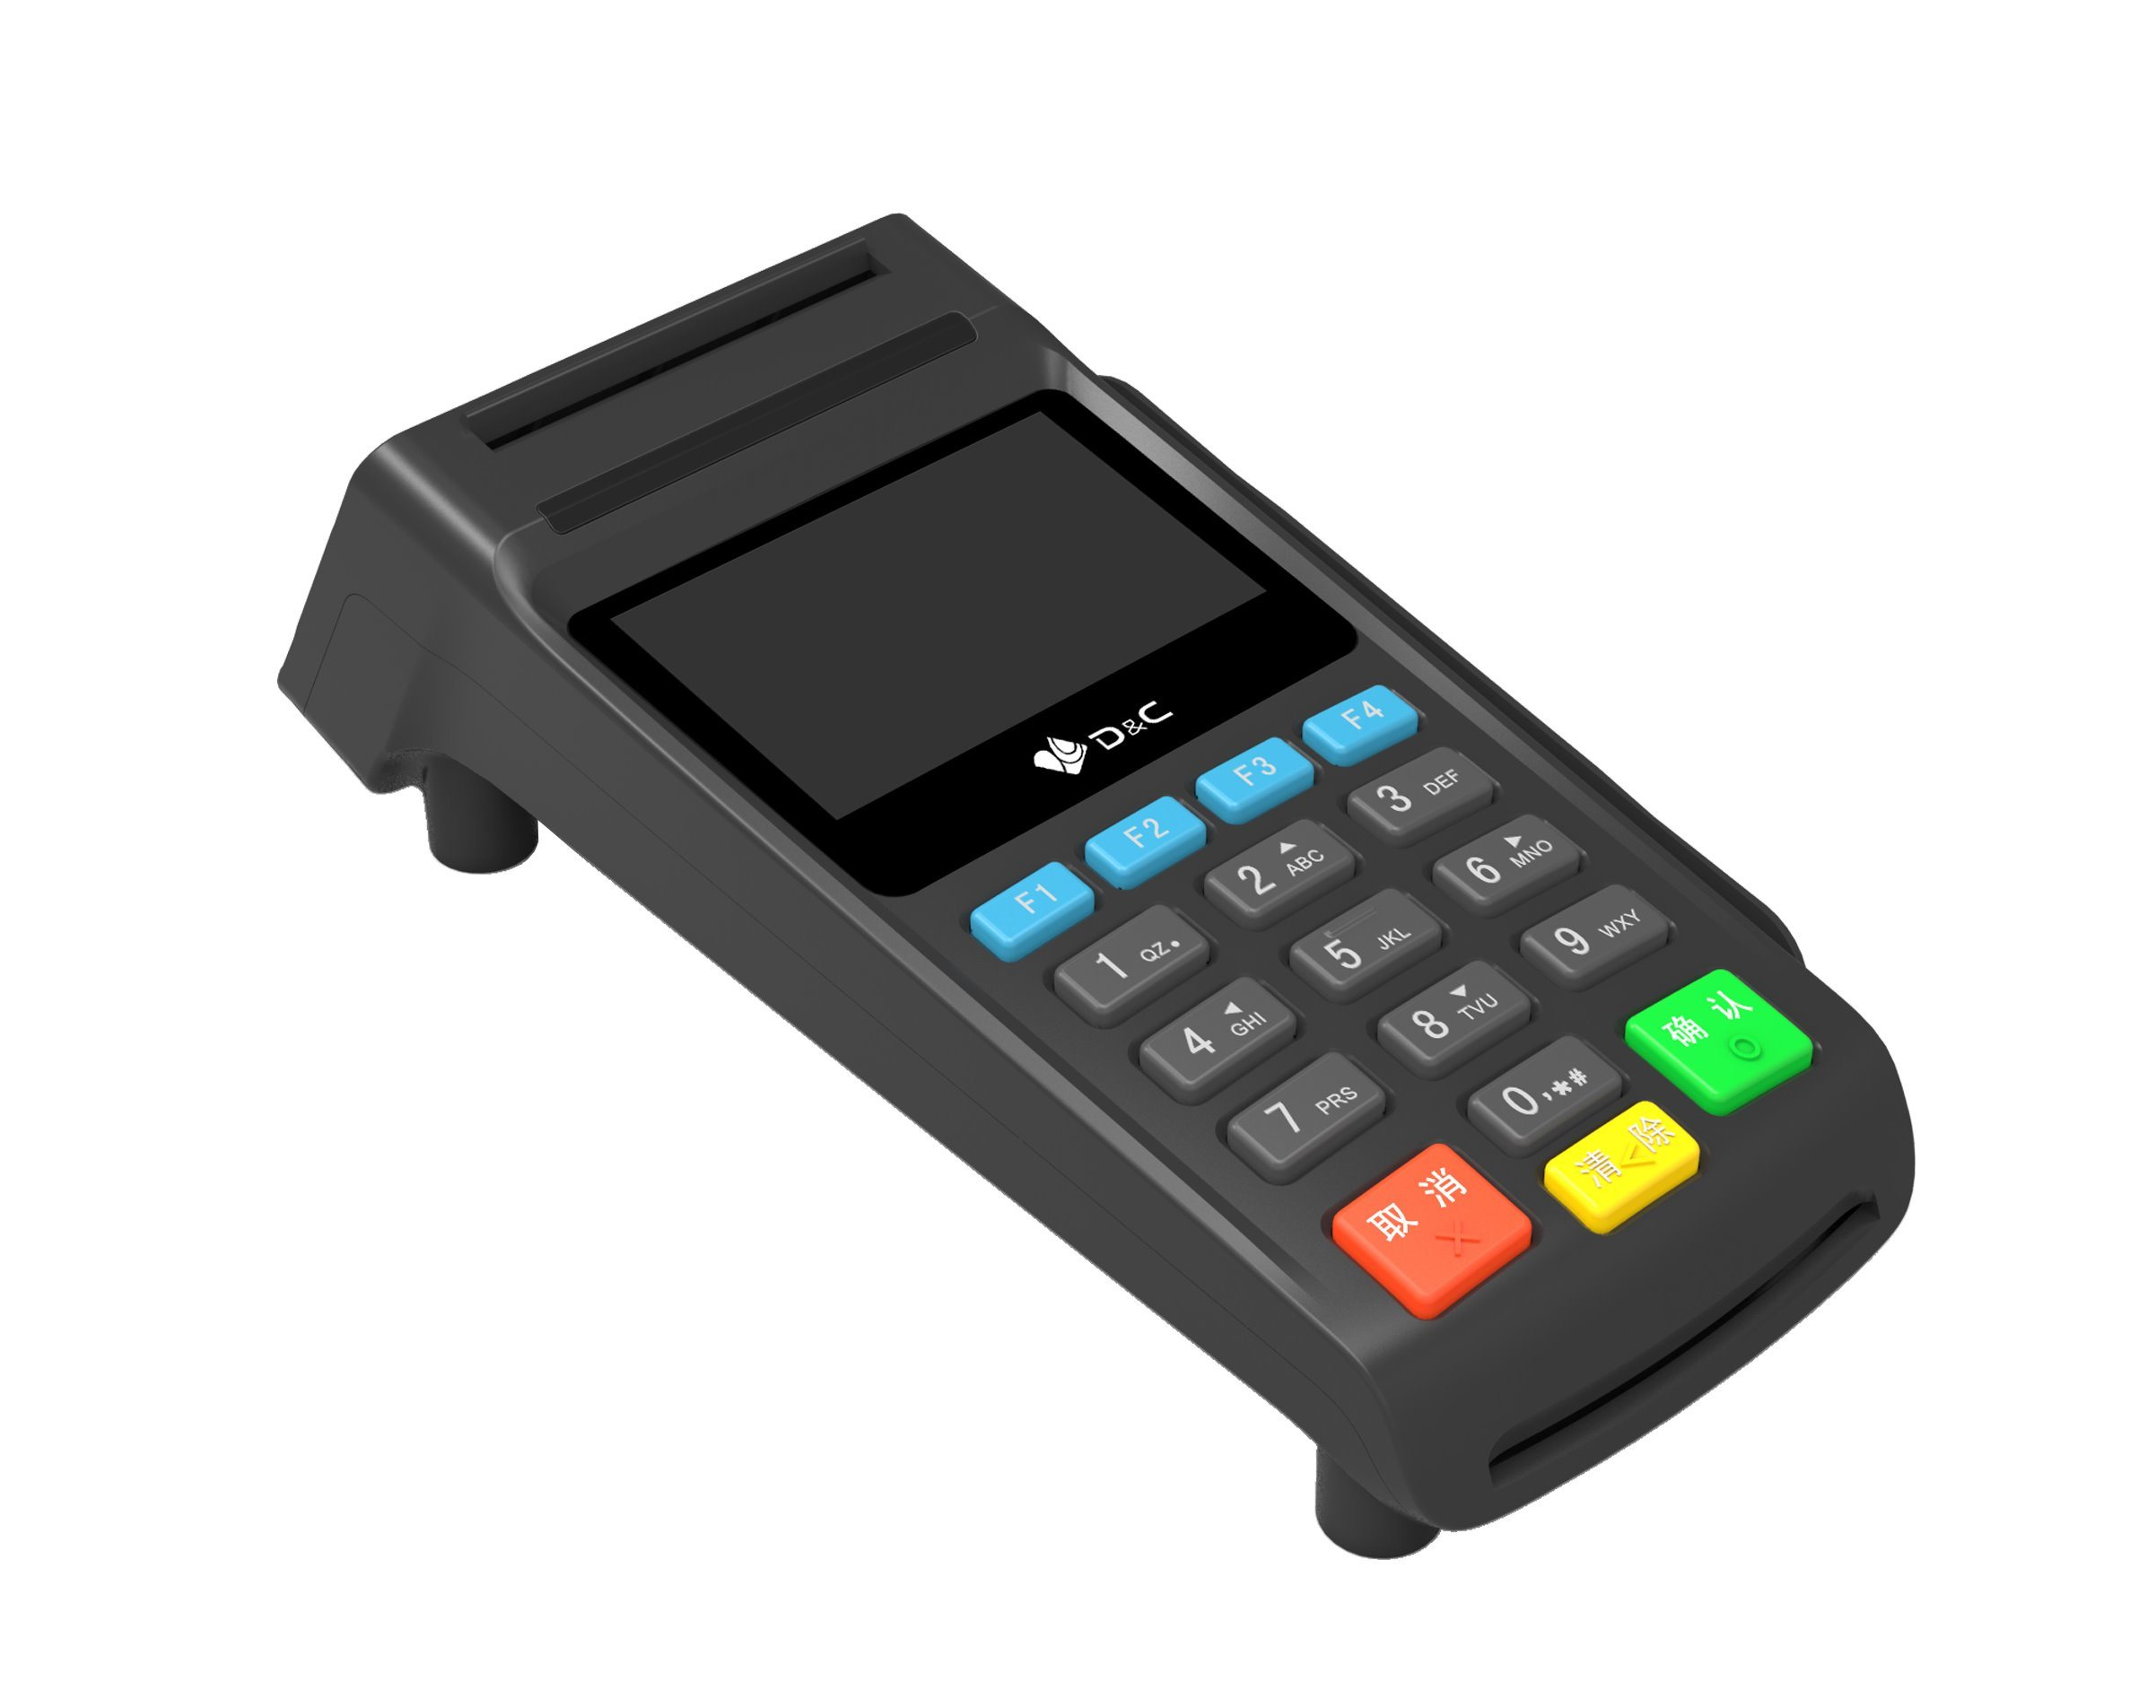 China pos pinpad skimmer with smart card reader z90 china all in china pos pinpad skimmer with smart card reader z90 china all in one card readerwriter smart card reader publicscrutiny Gallery